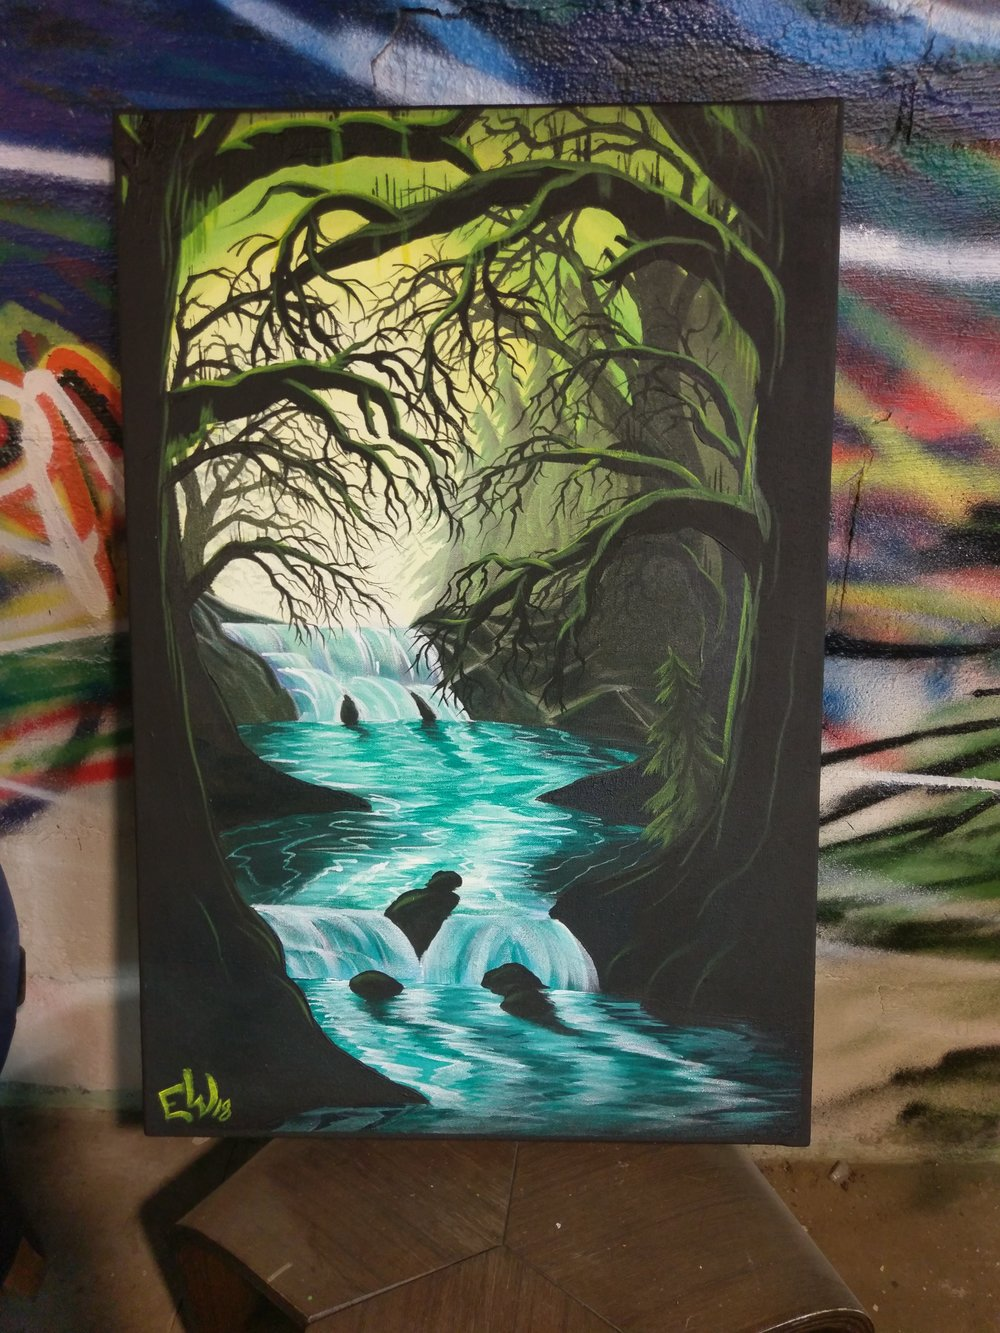 One of Evan's recent paintings. He said that this place came to him in a dream that he felt compelled to paint.